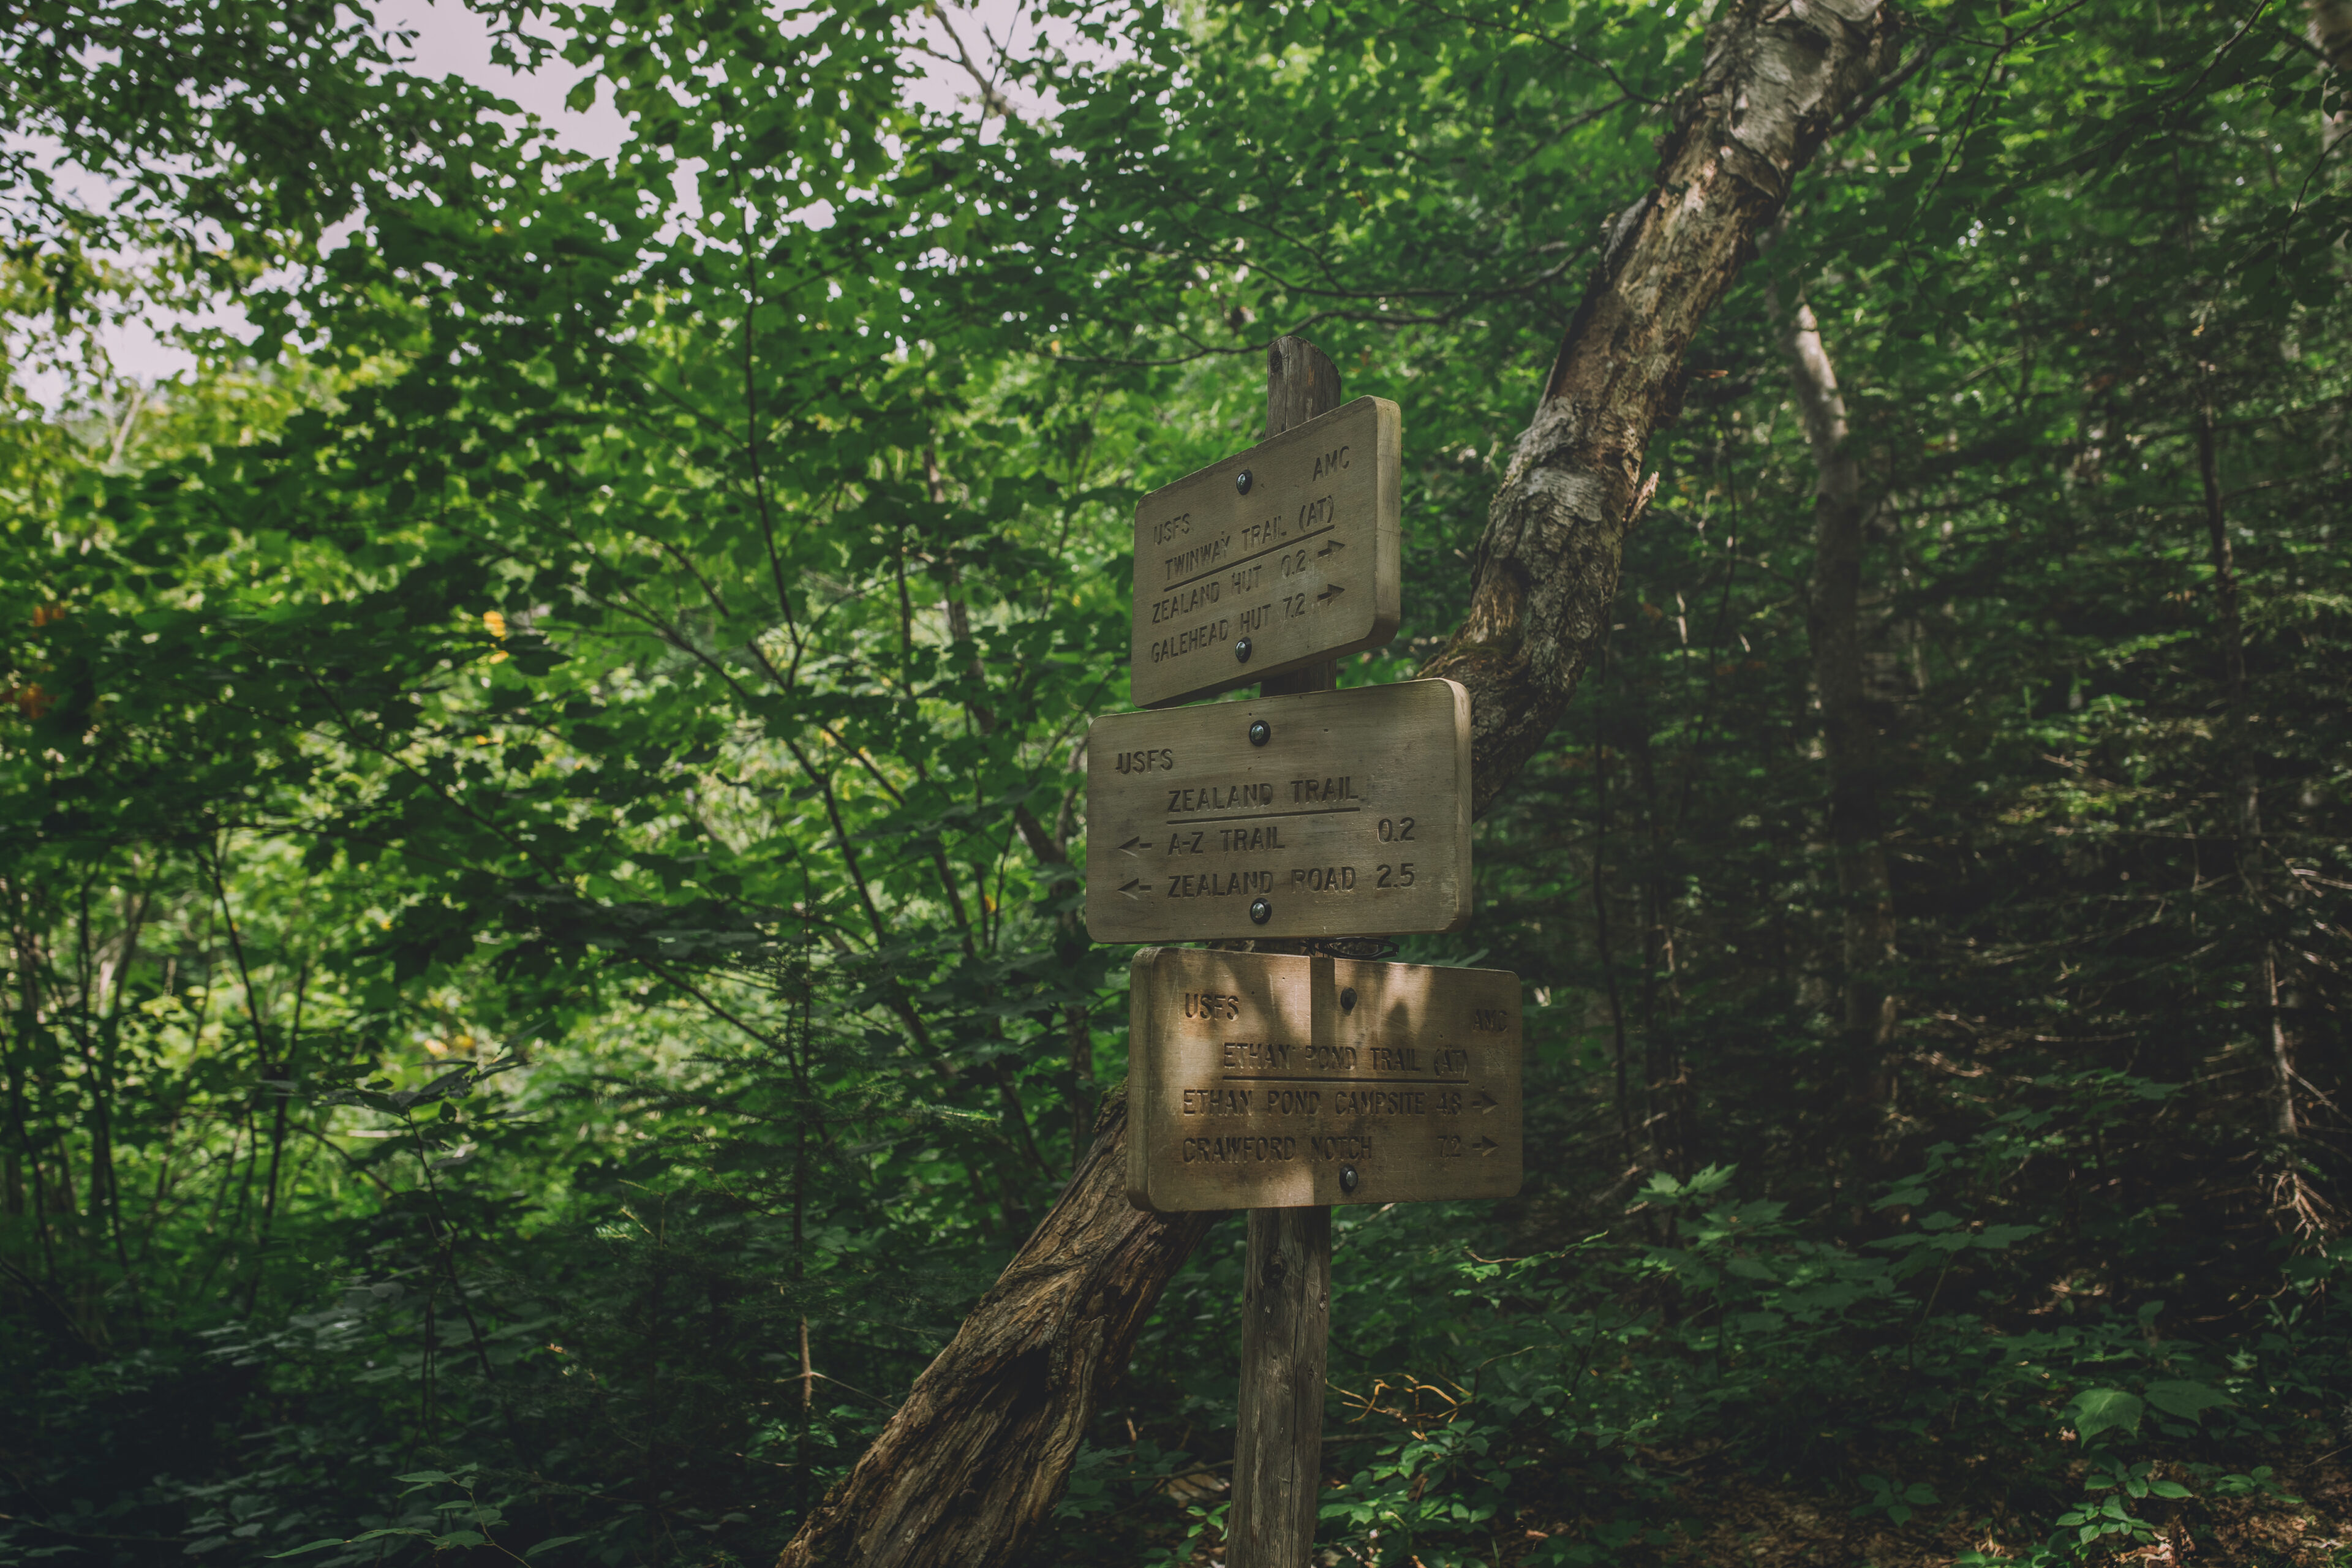 AMC trail signs